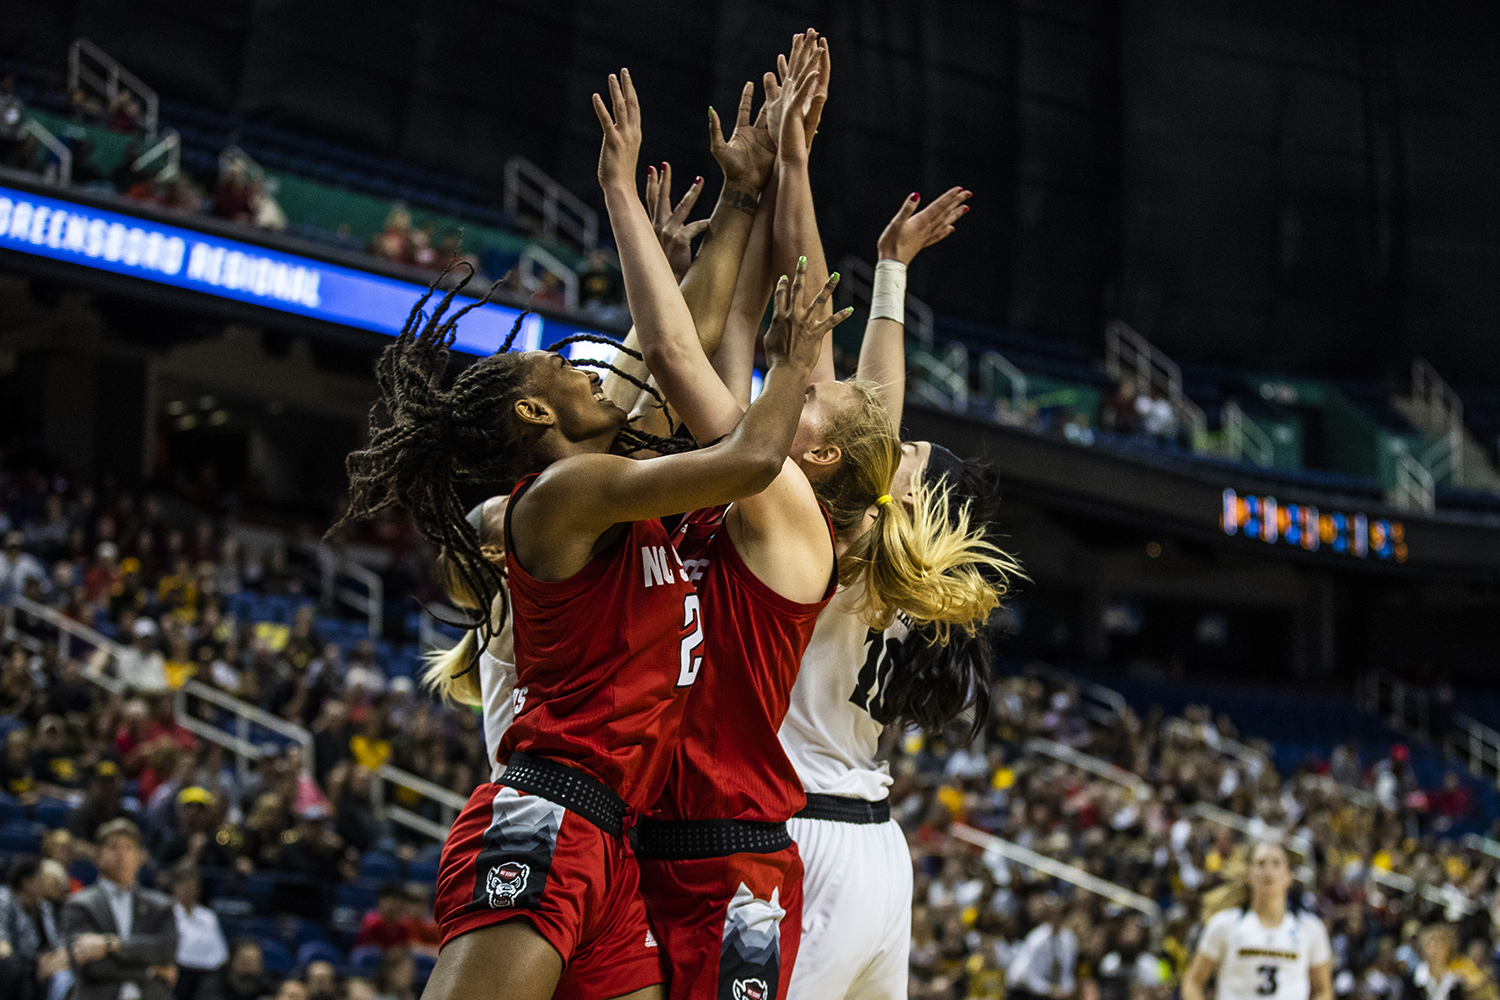 Iowa and NC State players reach for a rebound during the NCAA Sweet 16 game against NC State at the Greensboro Coliseum Complex on Saturday, March 30, 2019. The Hawkeyes defeated the Wolfpack 79-61.